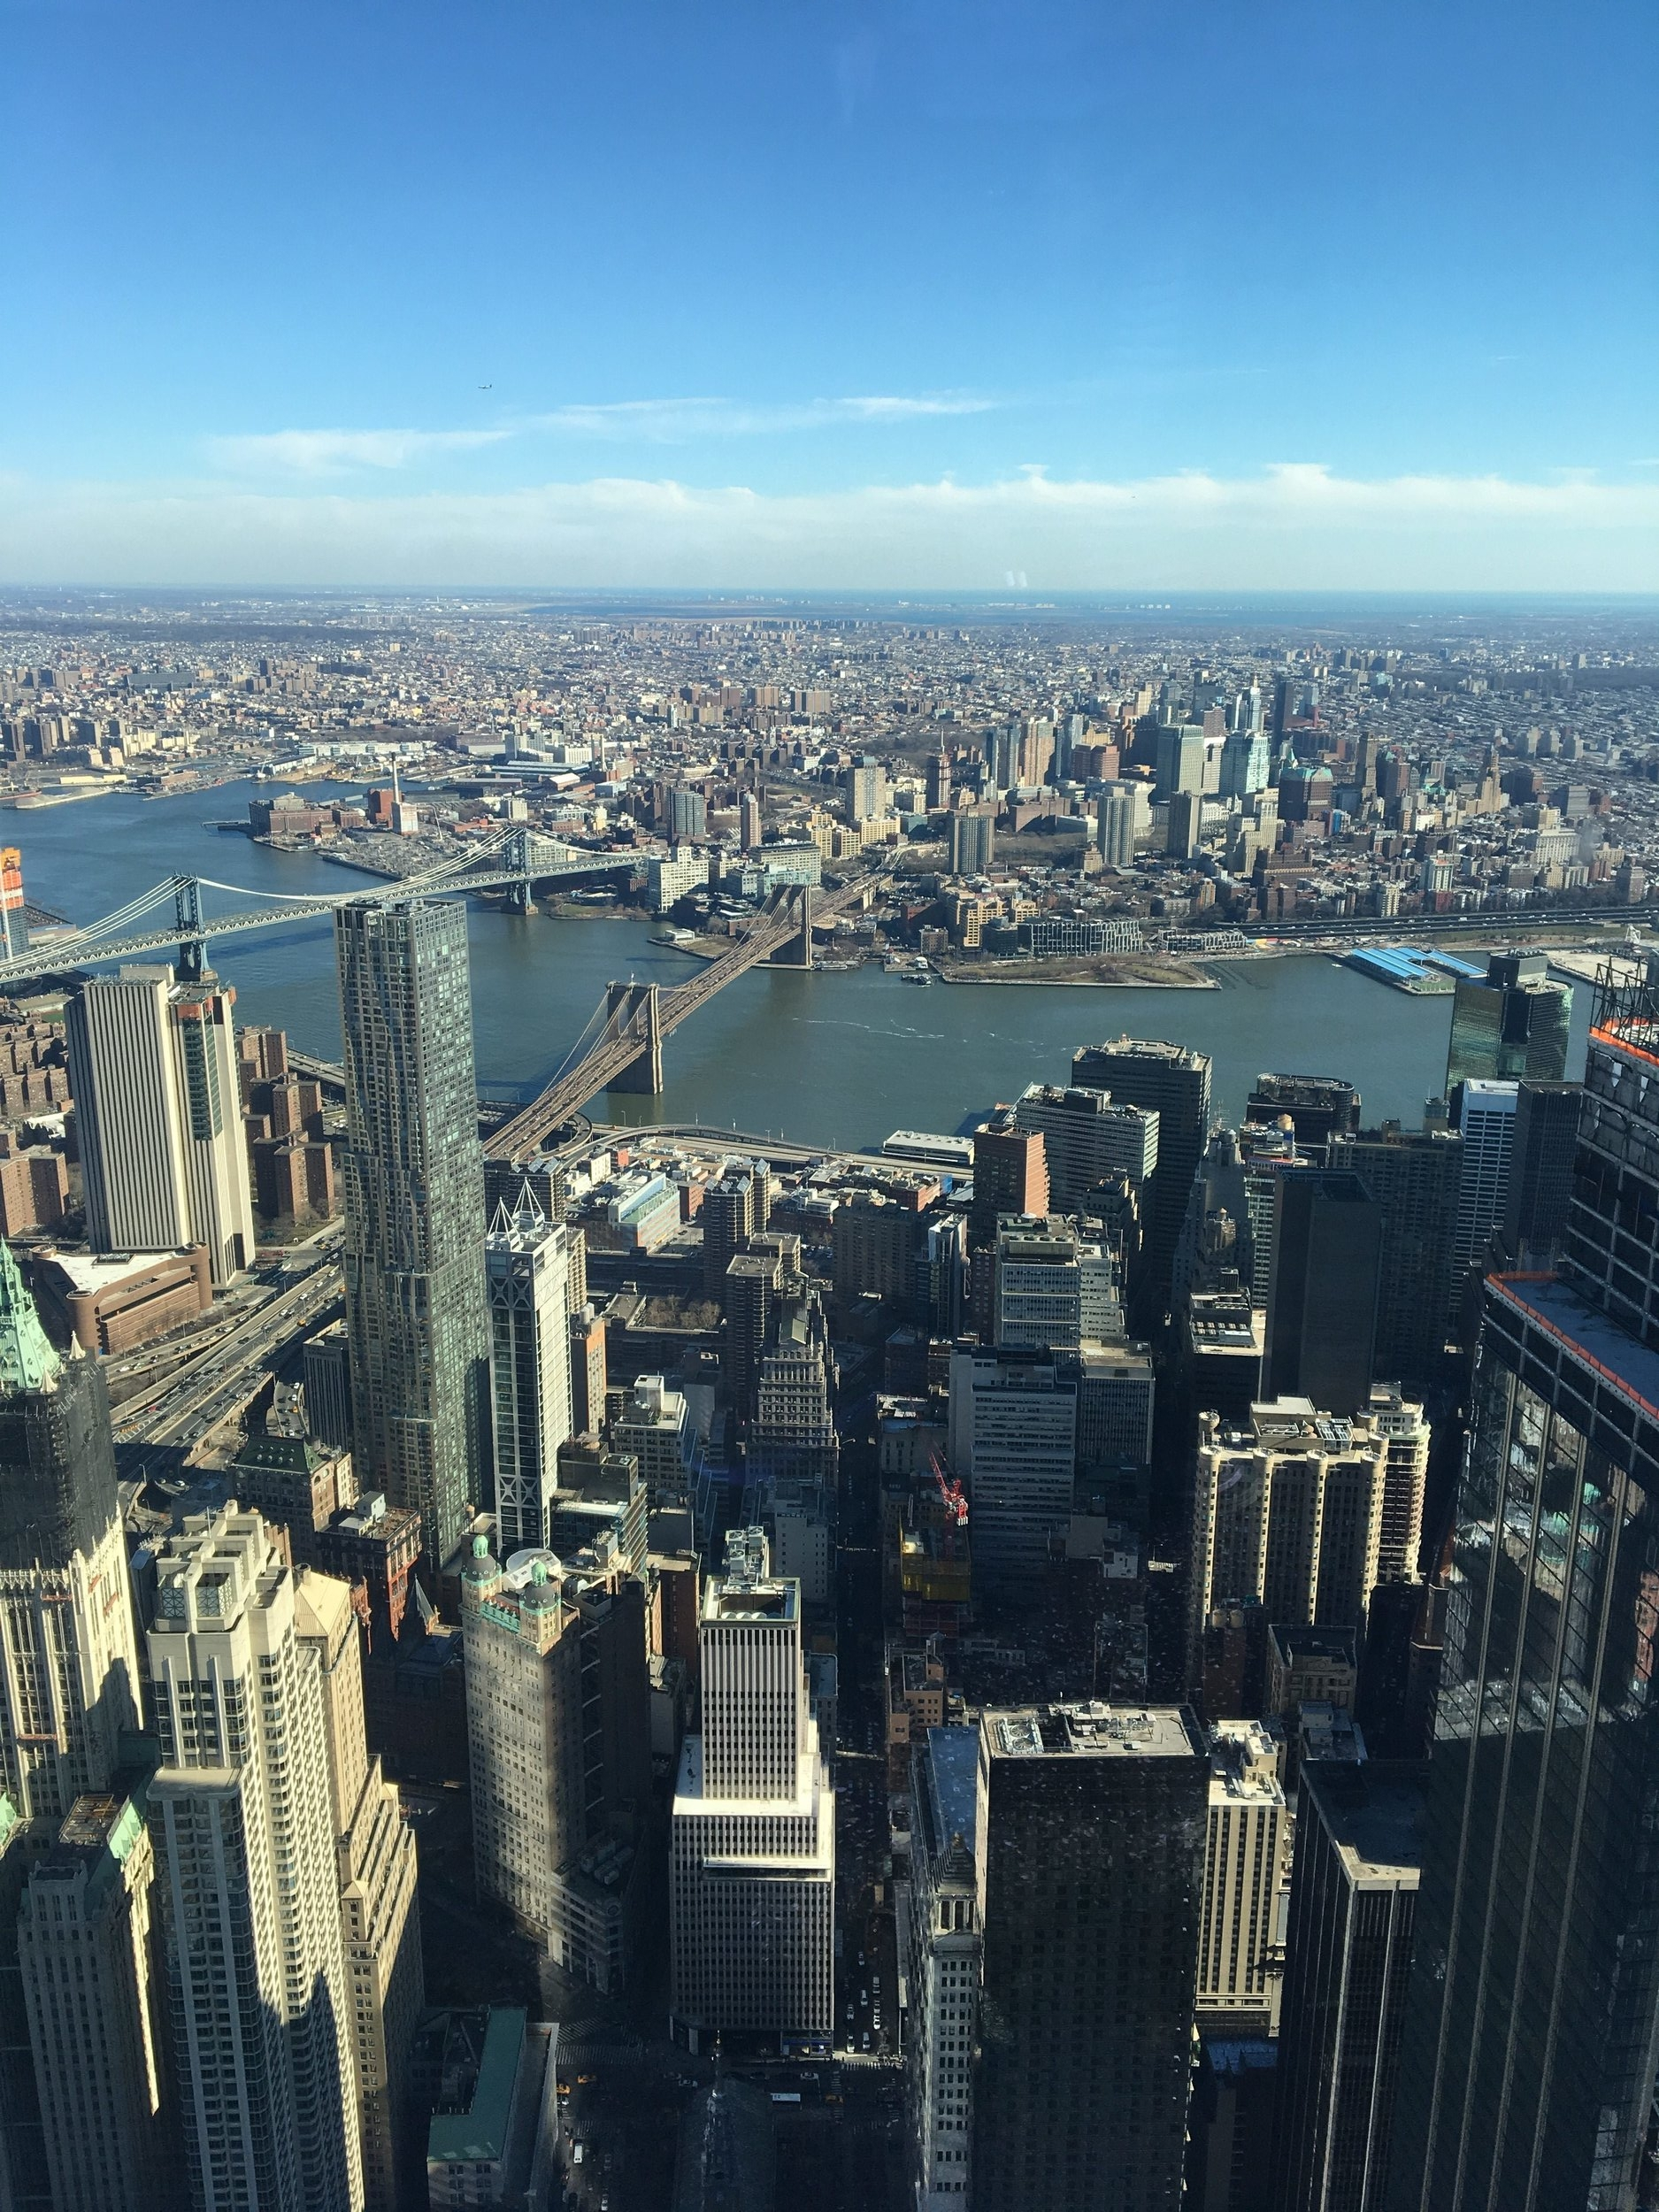 The ride up the elevator and the views from the observatory was amazing. I wasn't sure what to expect but I would recommend this to any visitor. Oh hey there, NYC!